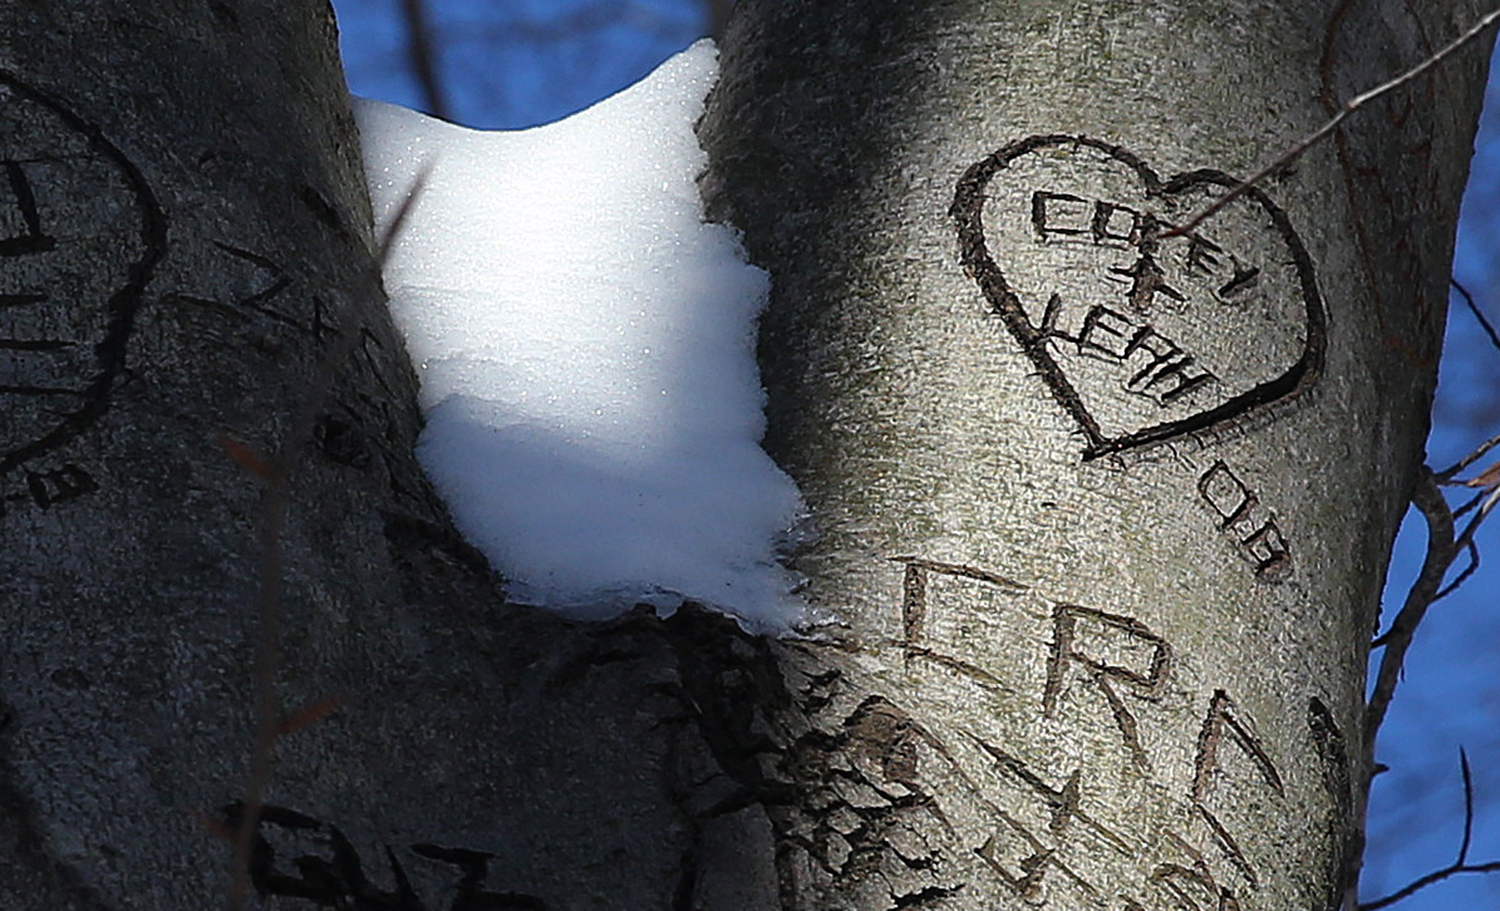 Corey and Leah, has your love grown like your heart seen up high? Photographed at Lincoln Memorial Garden on Monday, Feb. 10, 2014. David Spencer/The State Journal-Register